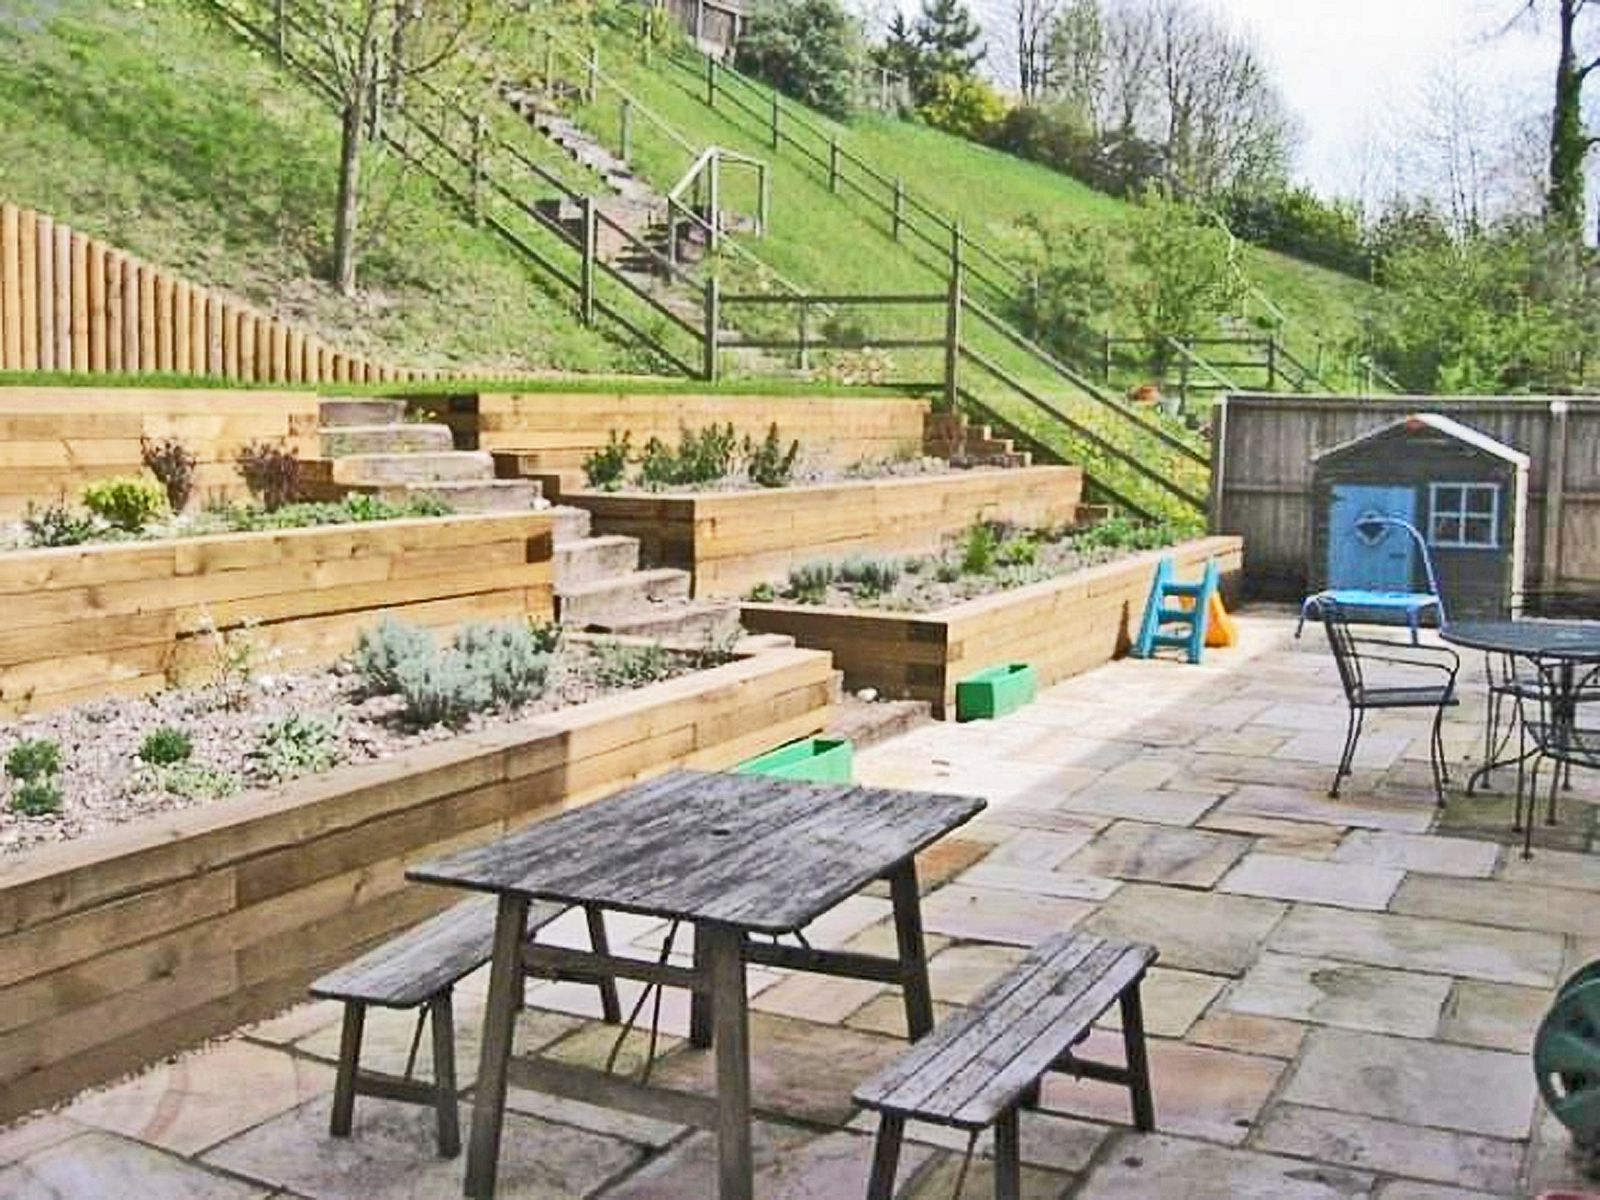 13 Hillside Landscaping Ideas To Maximize Your Yard for 13 Smart Concepts of How to Upgrade Backyard Hill Ideas